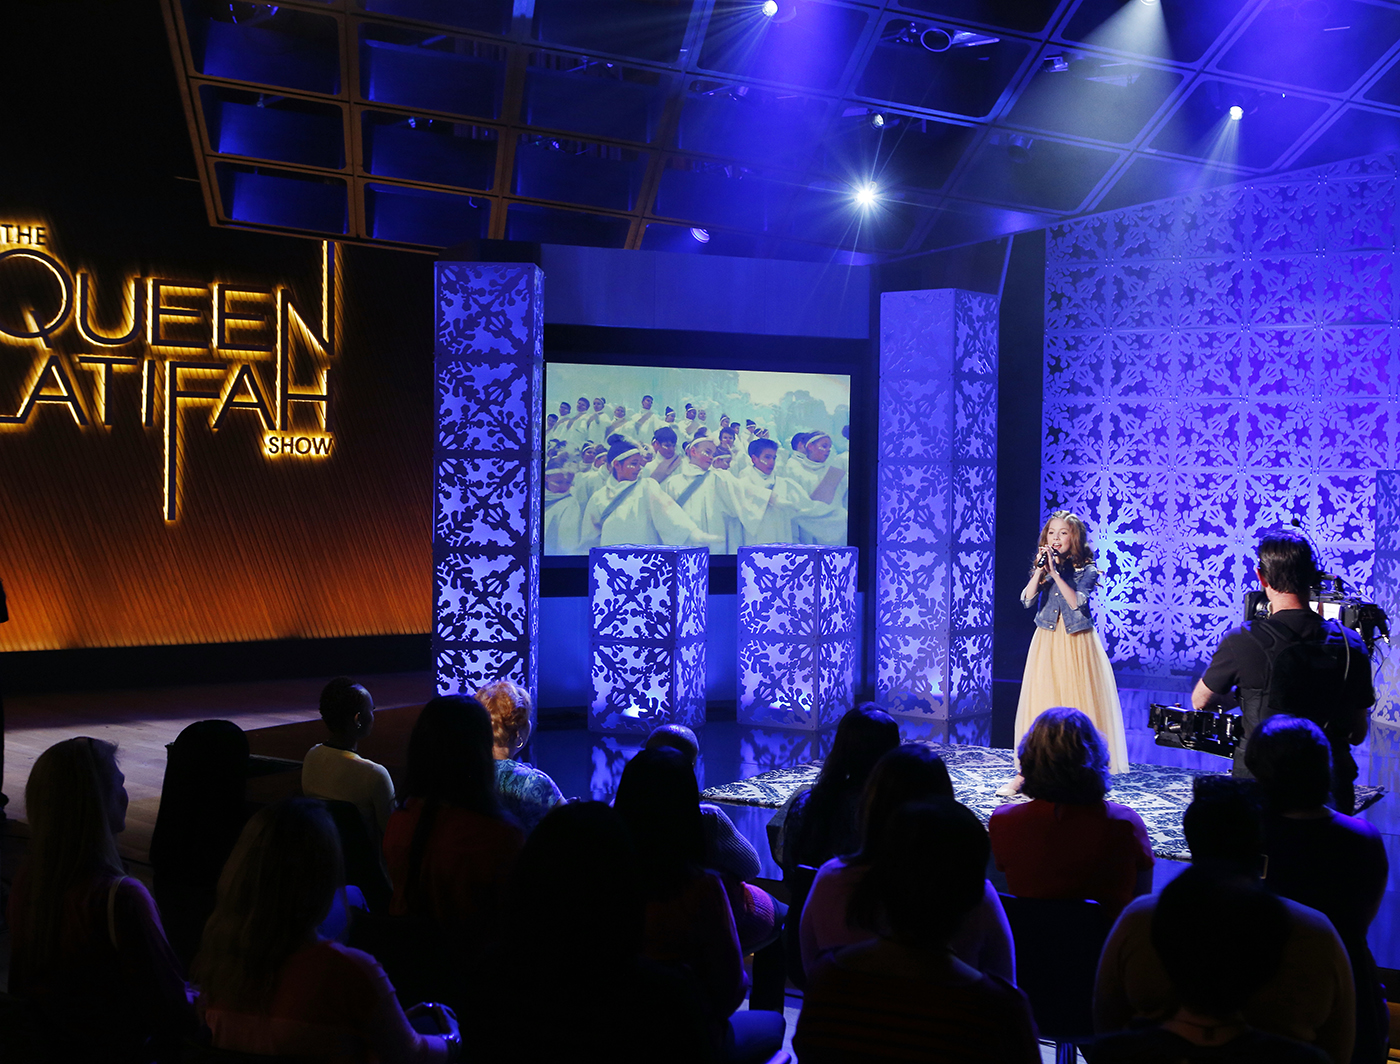 YETIFLAKE PANELS ON STAGE OF QUEEN LATIFAH SHOW